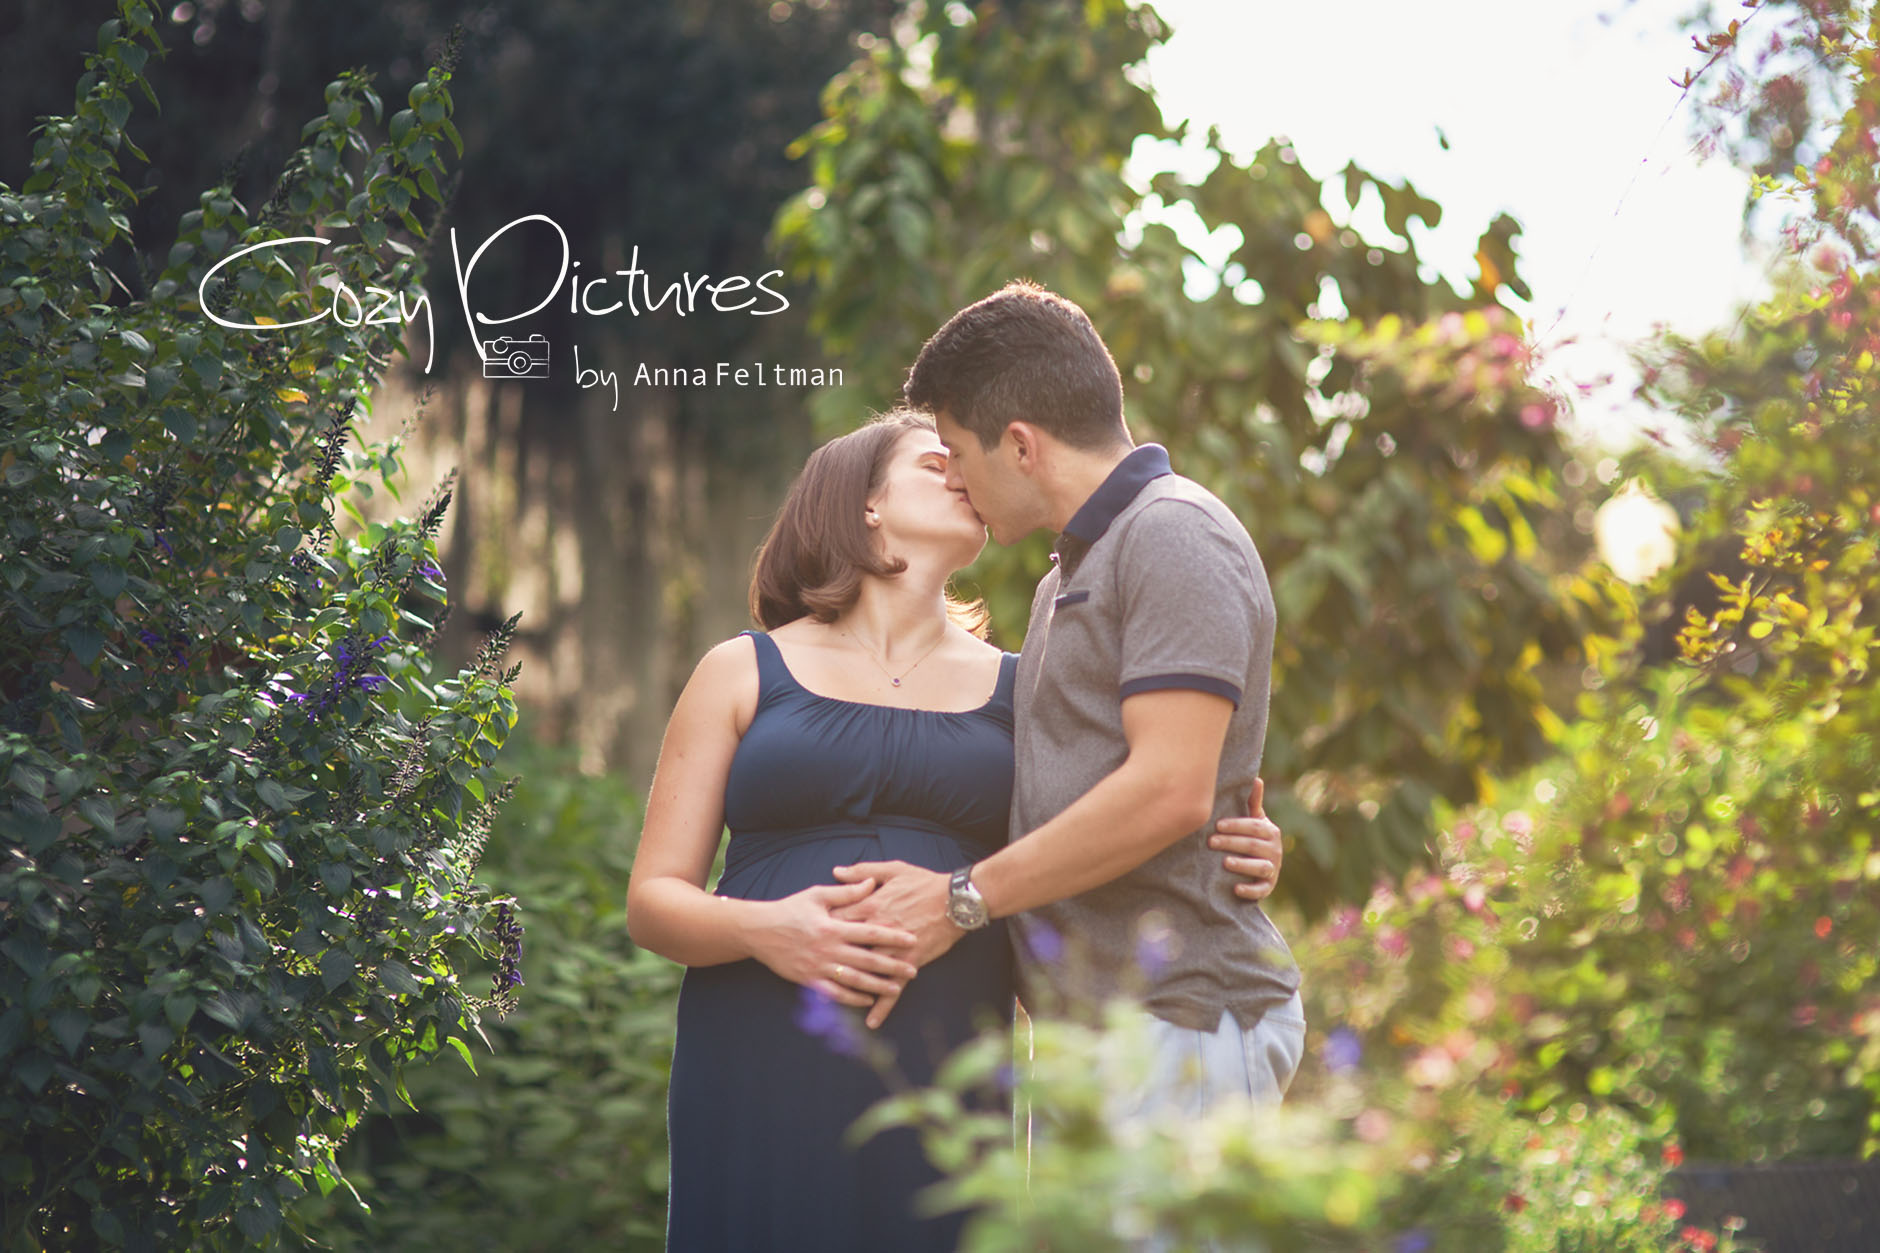 Maternity Photographer Orlando_Cozy Pictures_9.jpg